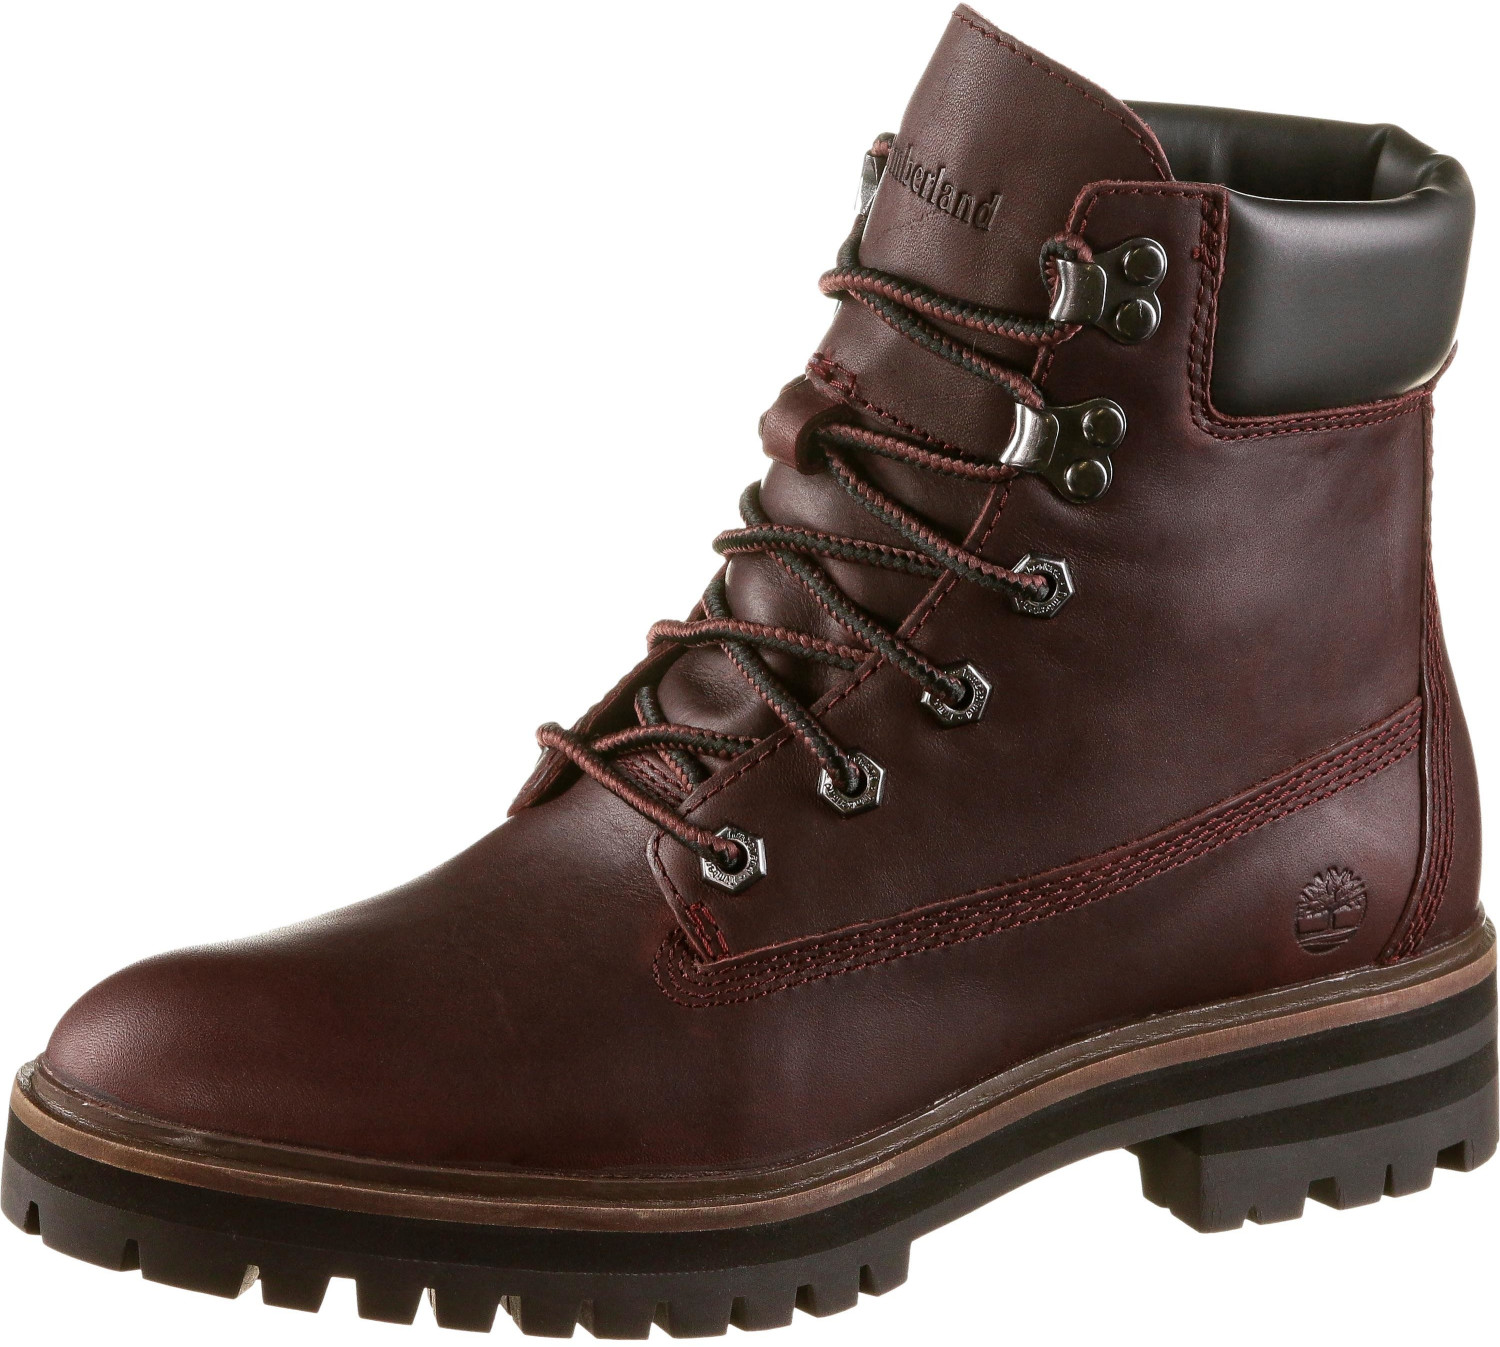 Timberland London Square 6-Inch (CA1RCS) brown